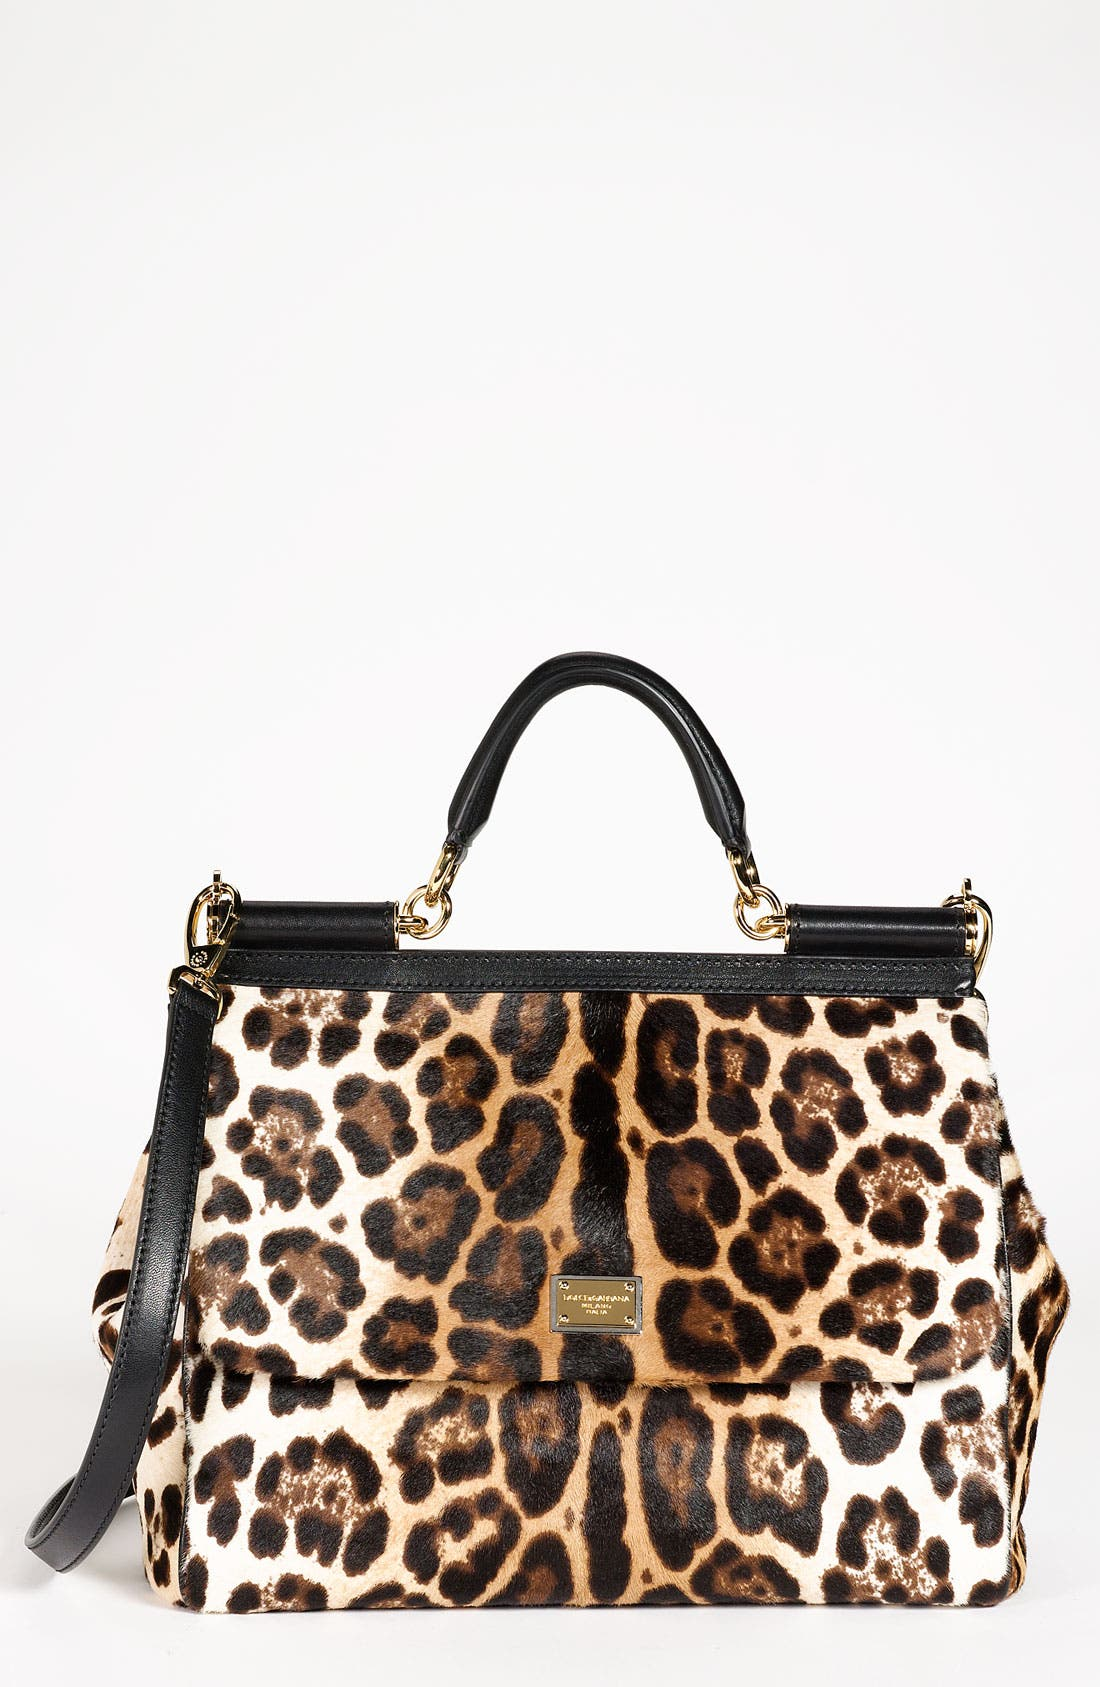 Alternate Image 1 Selected - Dolce&Gabbana 'Miss Sicily' Calf Hair & Leather Satchel